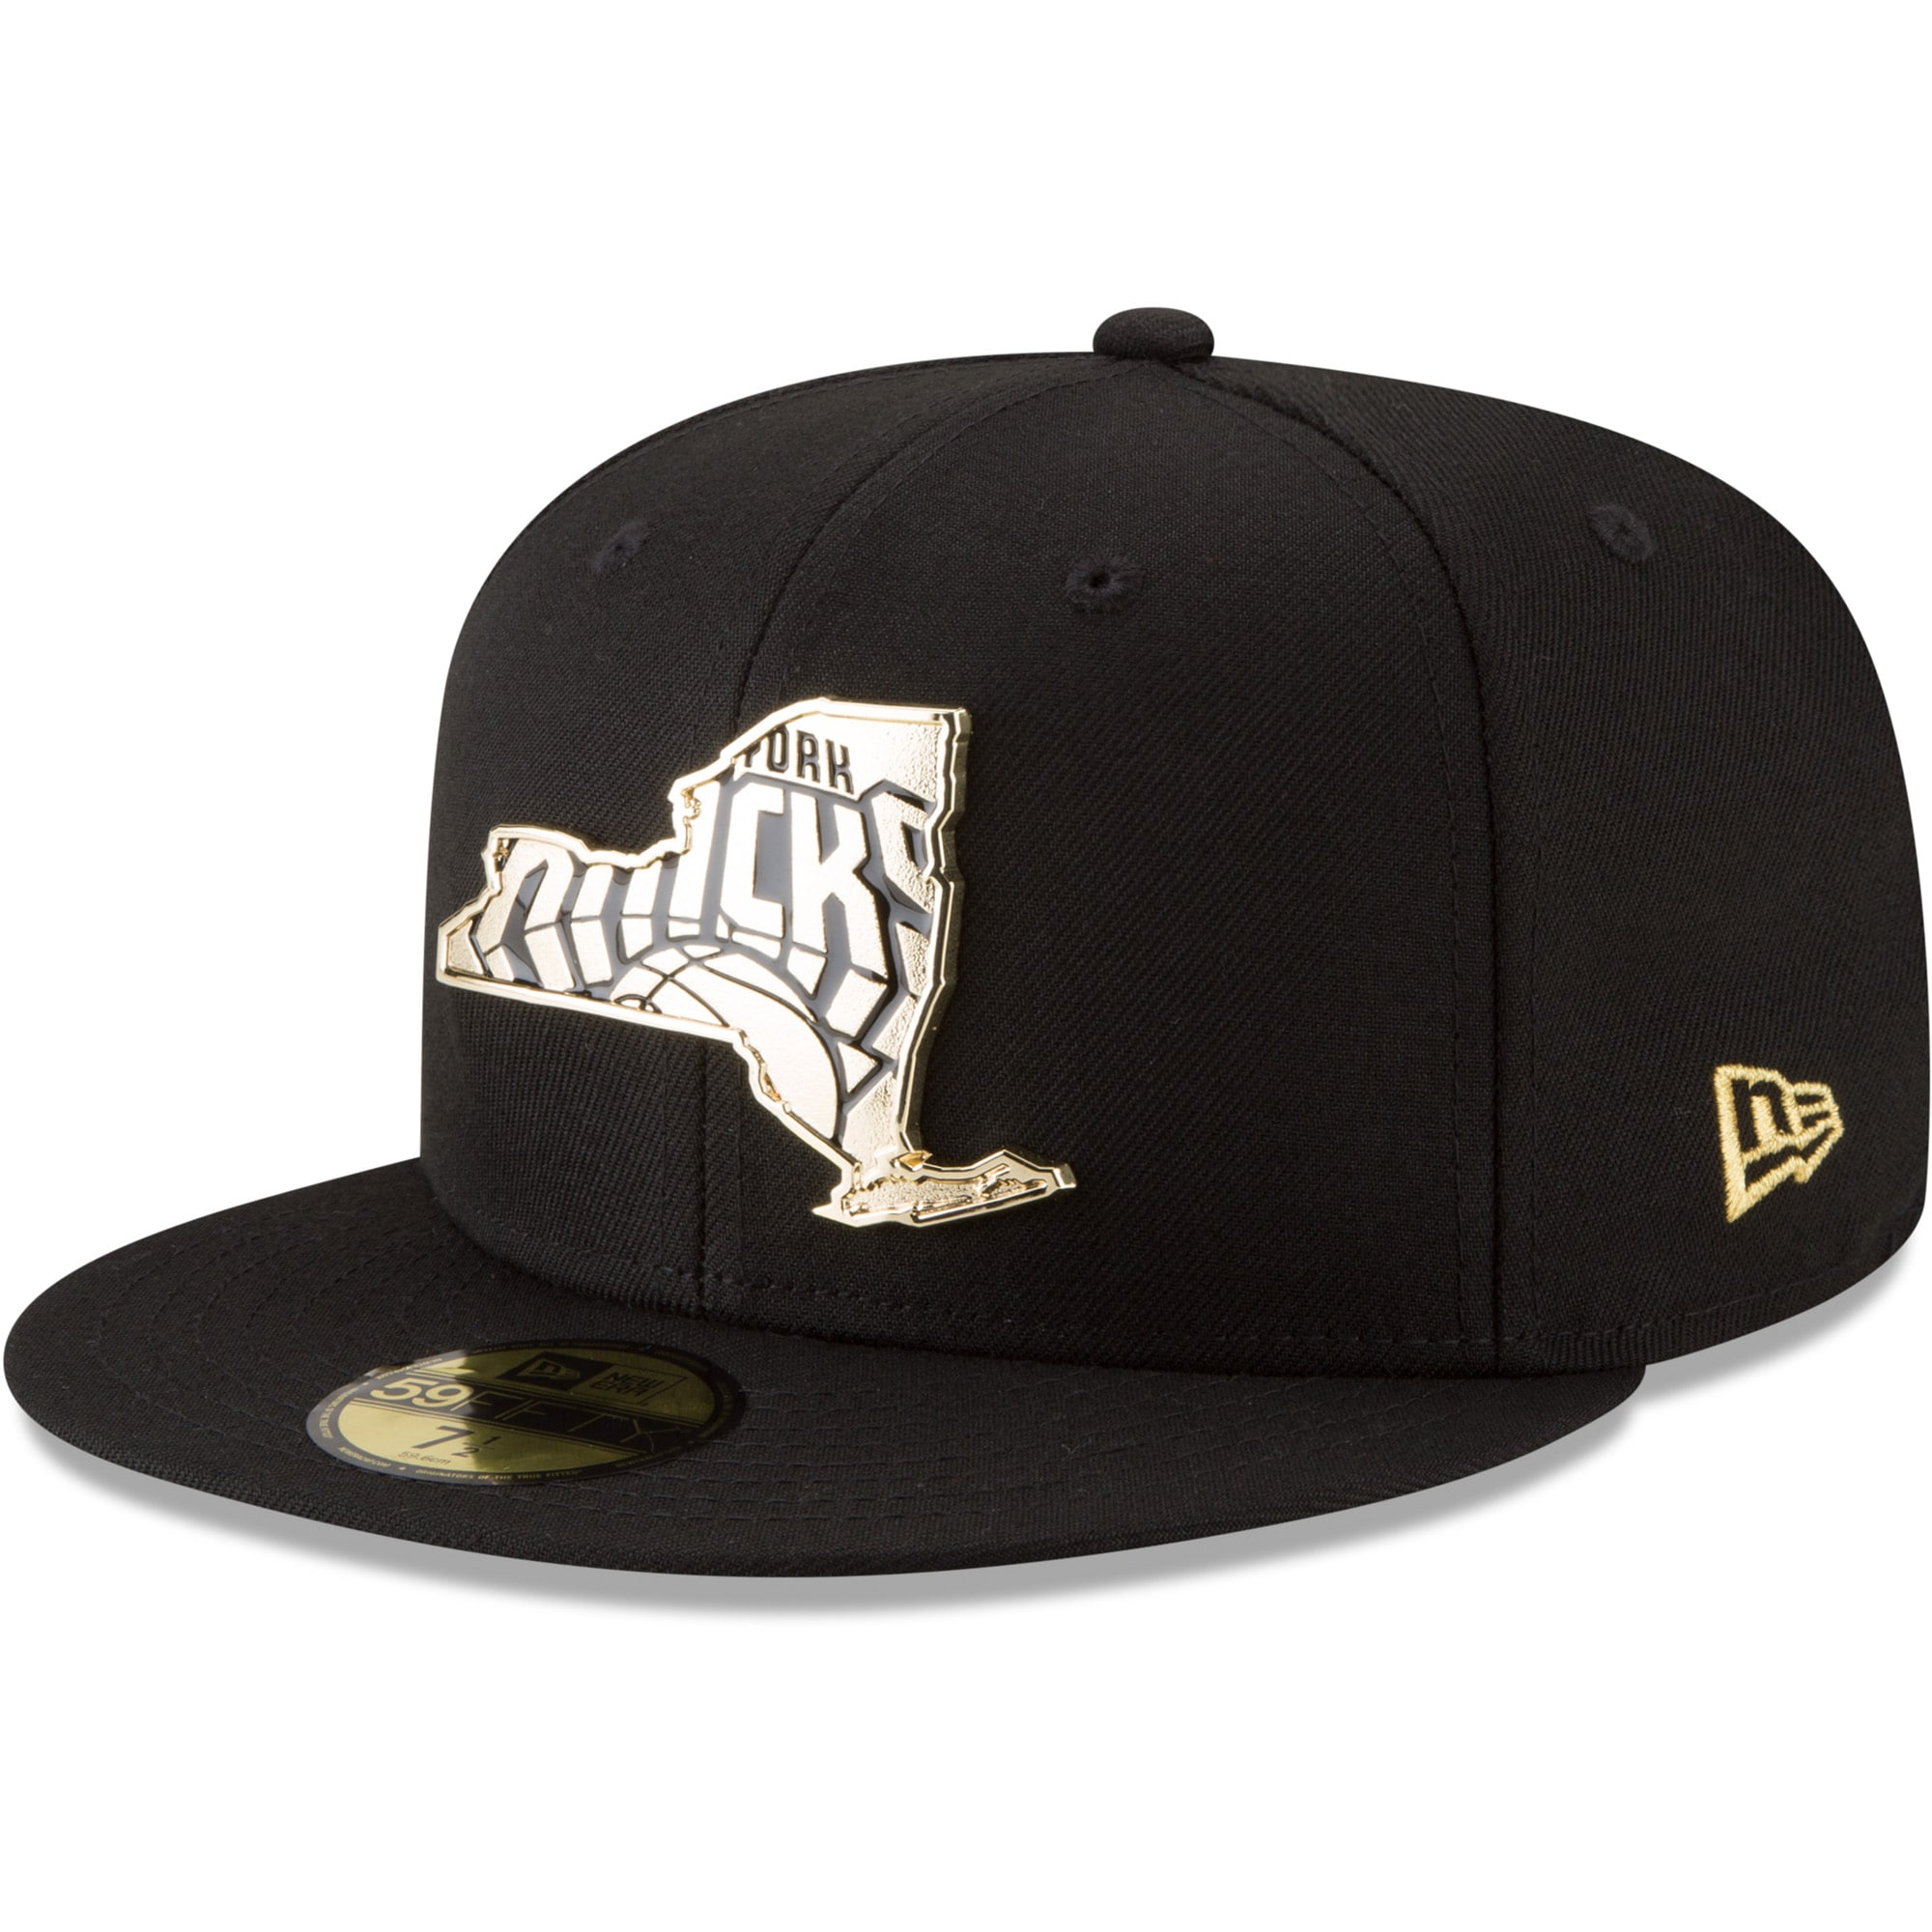 New York Knicks New Era Gold Stated 59FIFTY Fitted Hat - Black